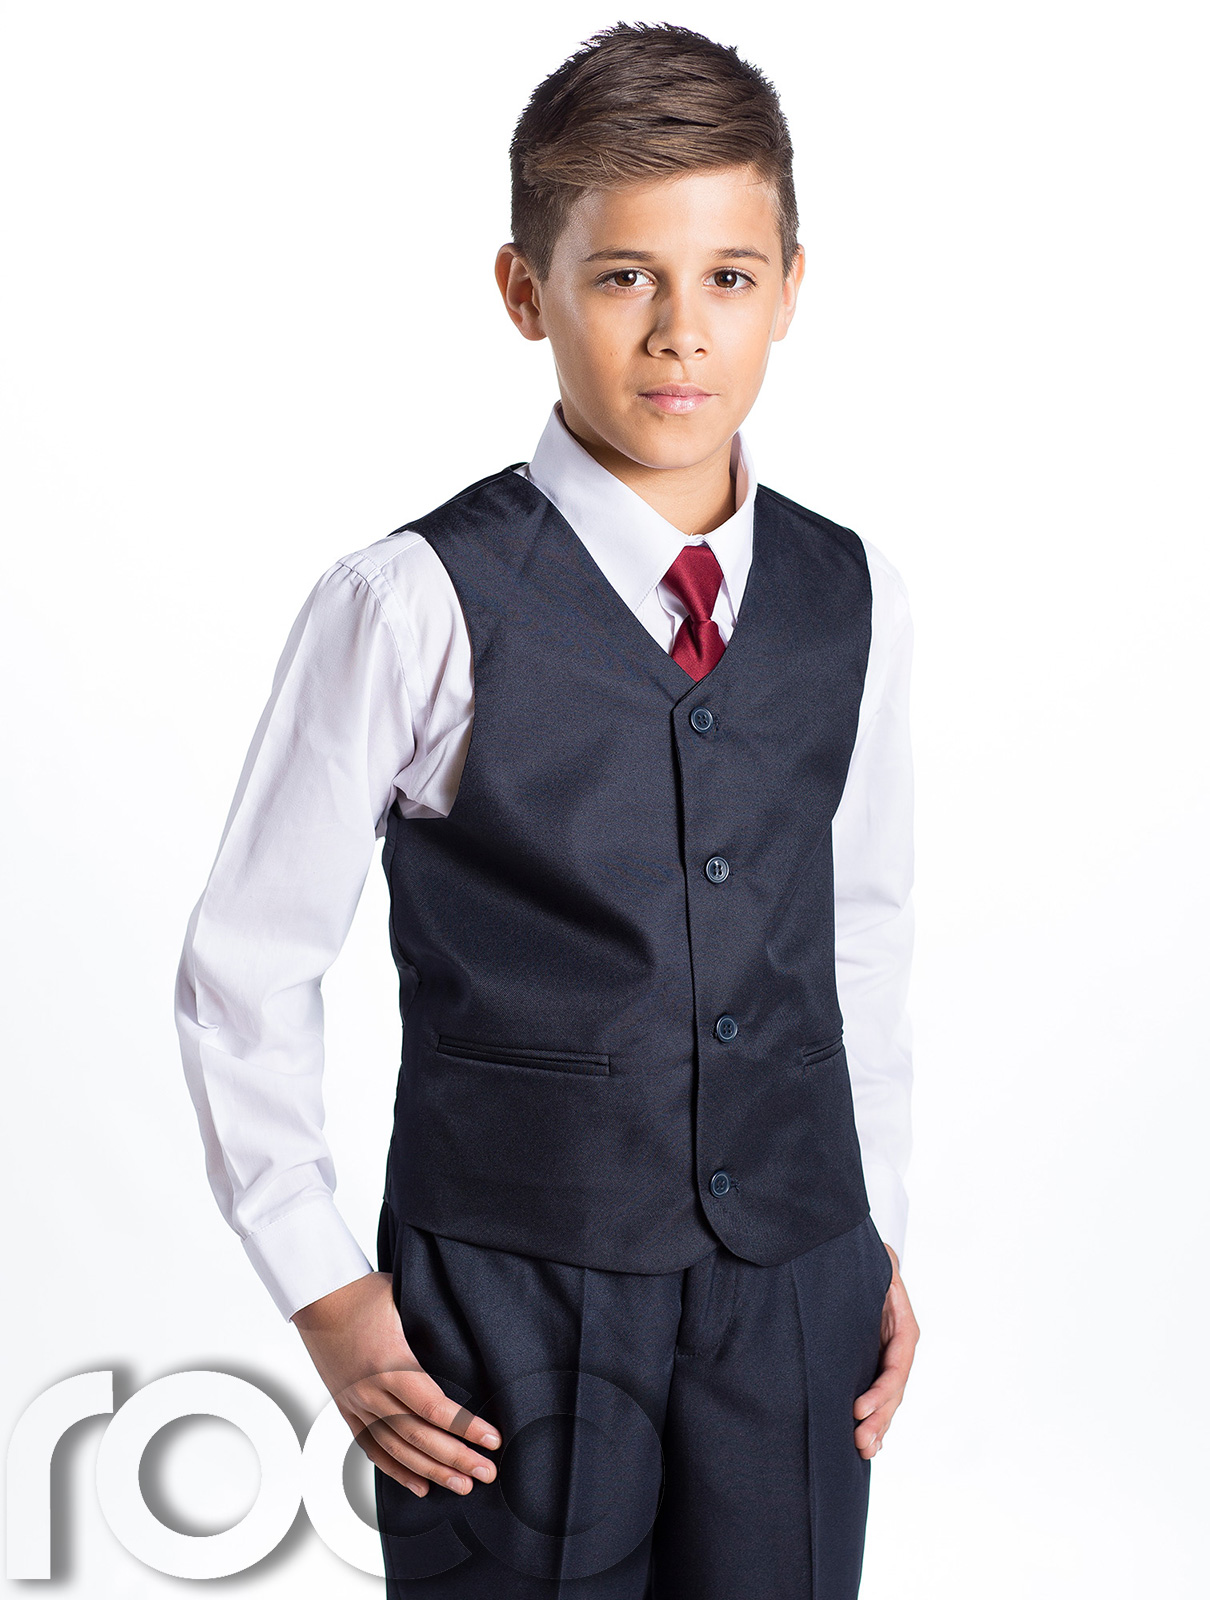 Get the best prom tuxedos and prom suits from Perfect Tux. Prom suits for men. Prom trends and styles including fashionable tuxedos, blazers, suits, shirts, vests and more. Prom is here.